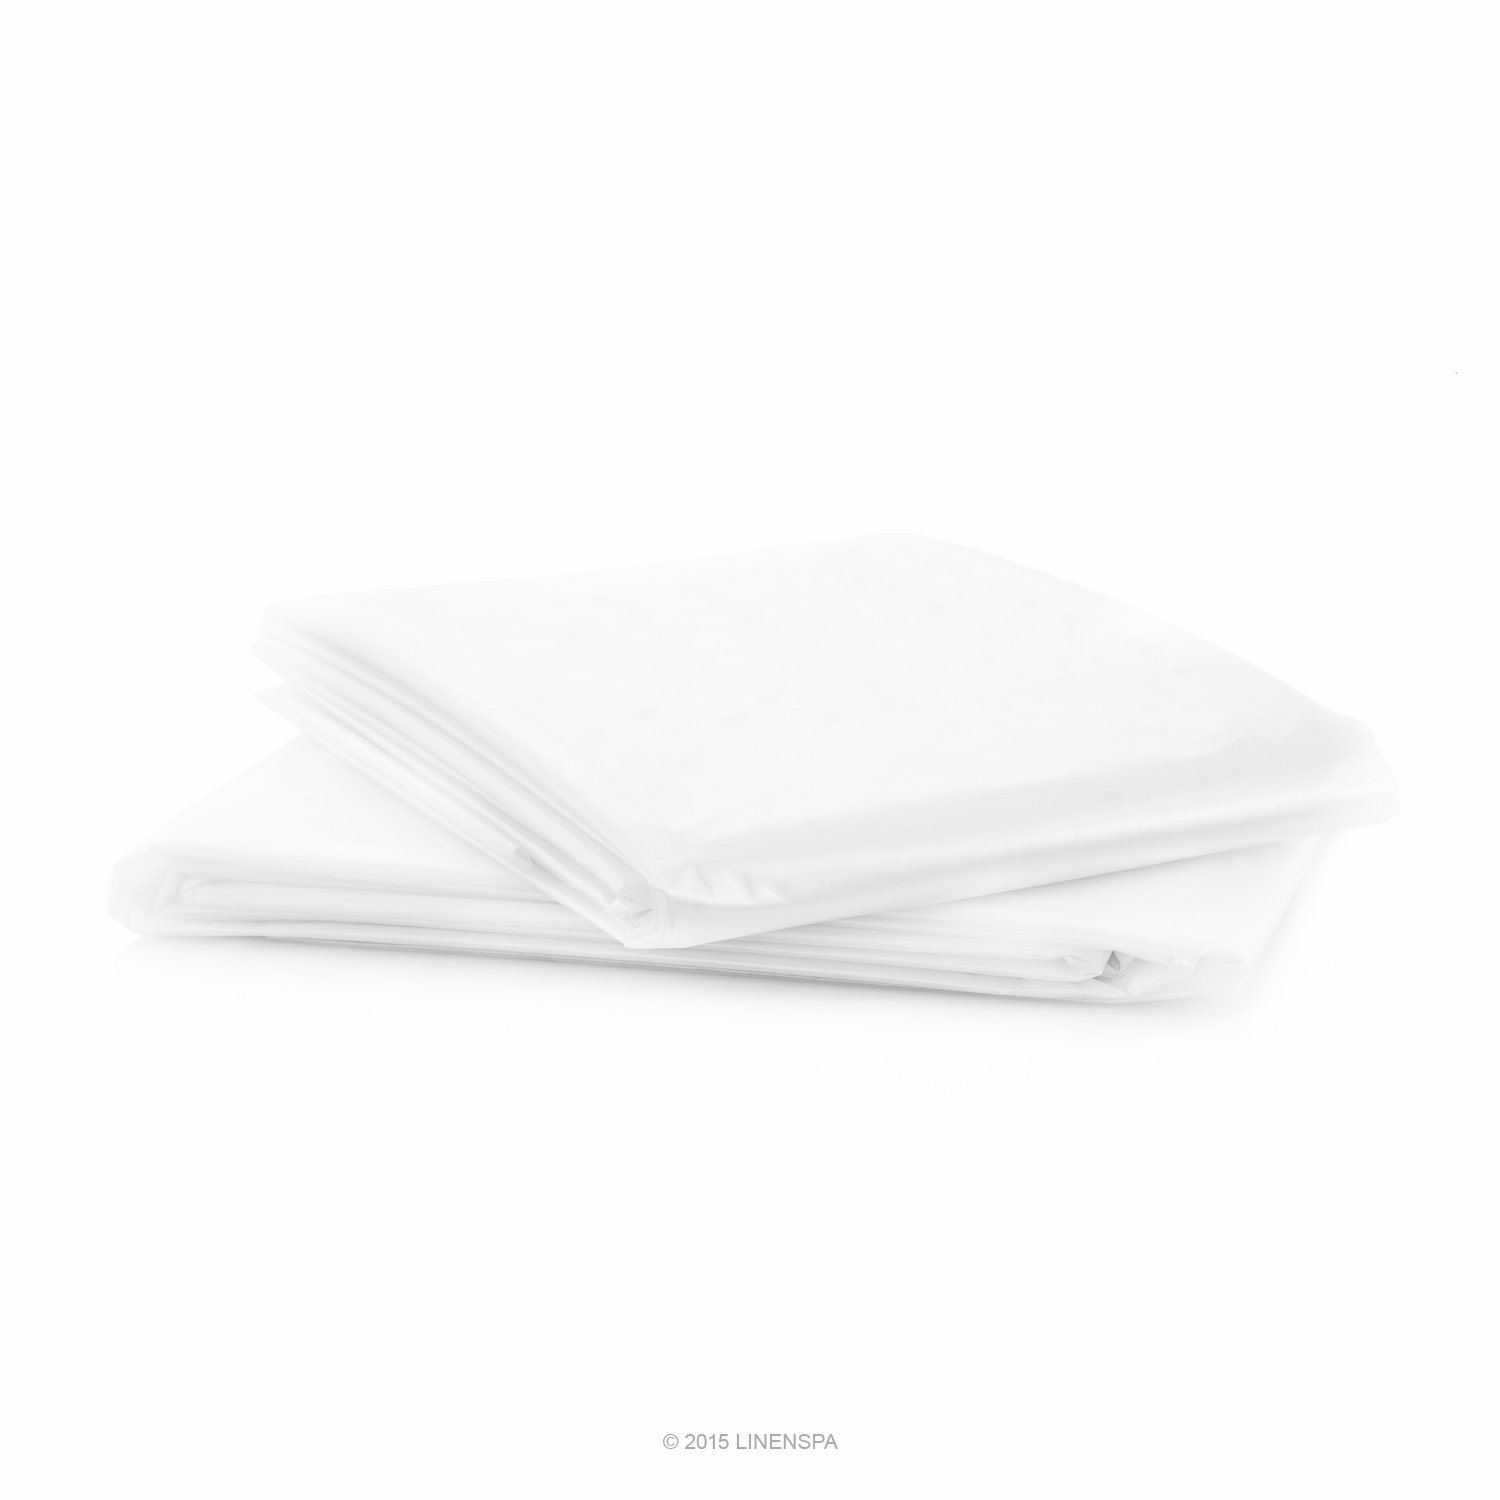 Amazon LINENSPA 2 Pack Mattress Bag for Moving and Storage